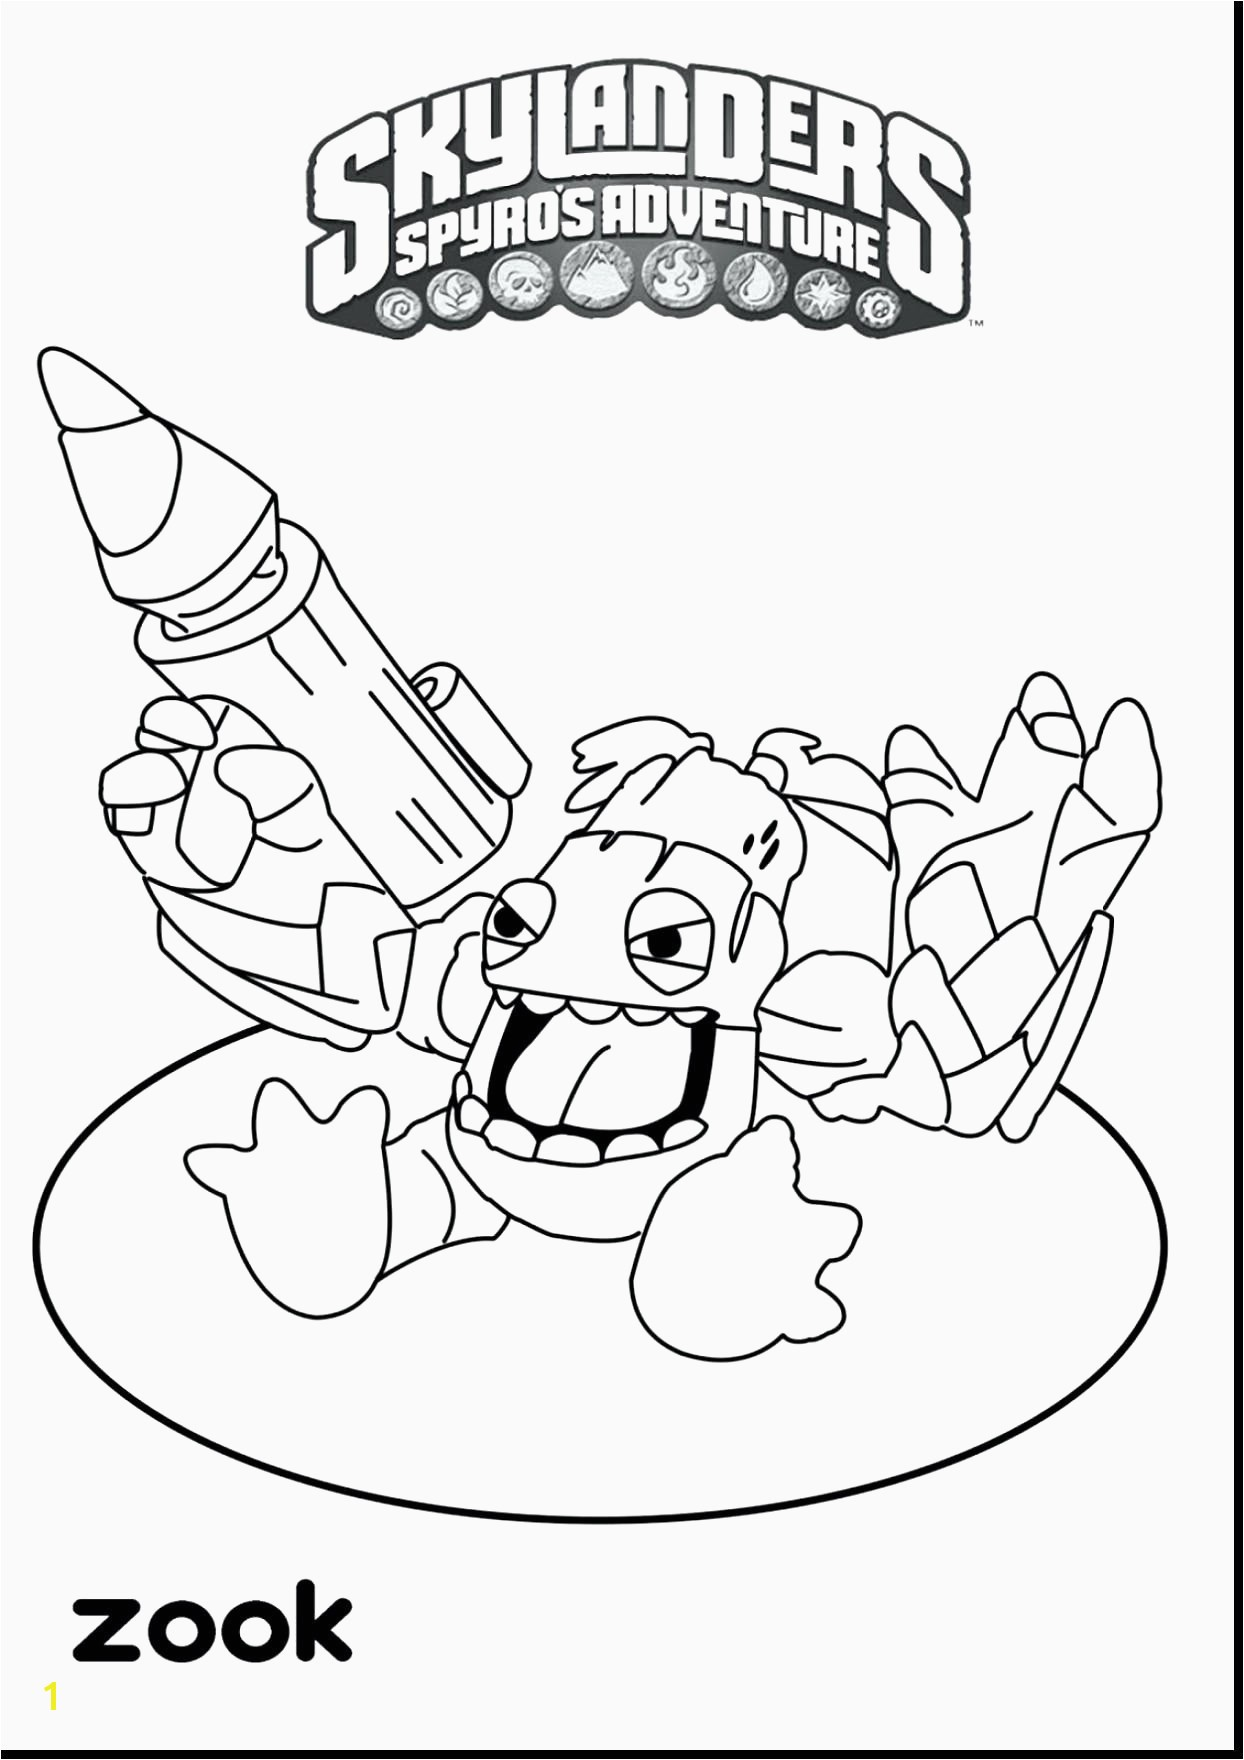 Automn Coloring Pages Autumn Coloring Pages New Preschool Coloring Pages Fresh Fall